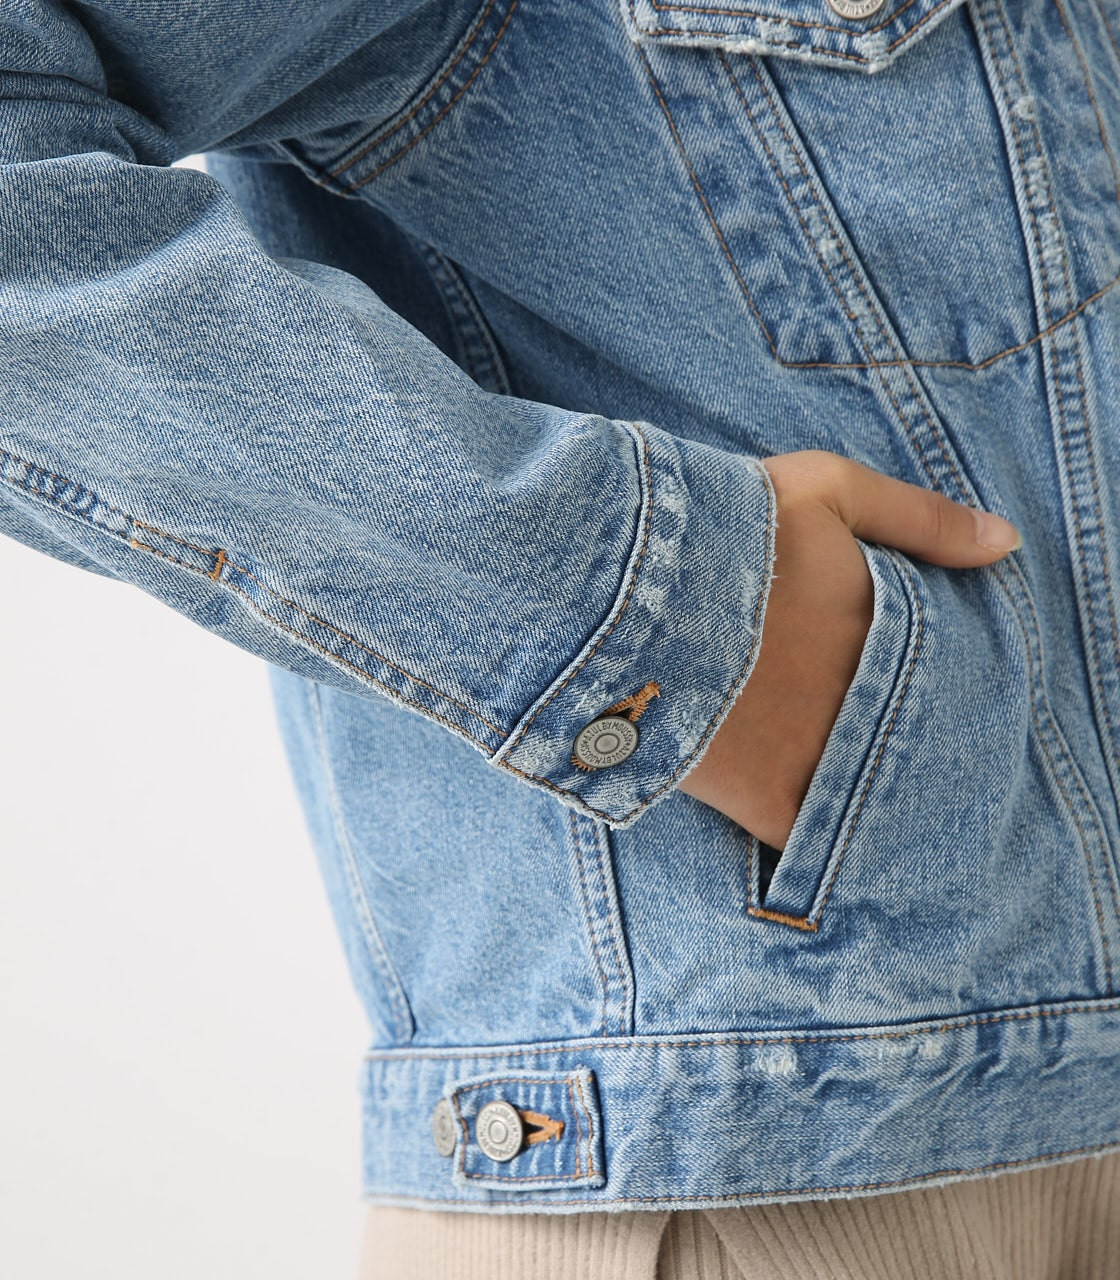 【AZUL BY MOUSSY】DENIM JACKET 詳細画像 L/BLU 9